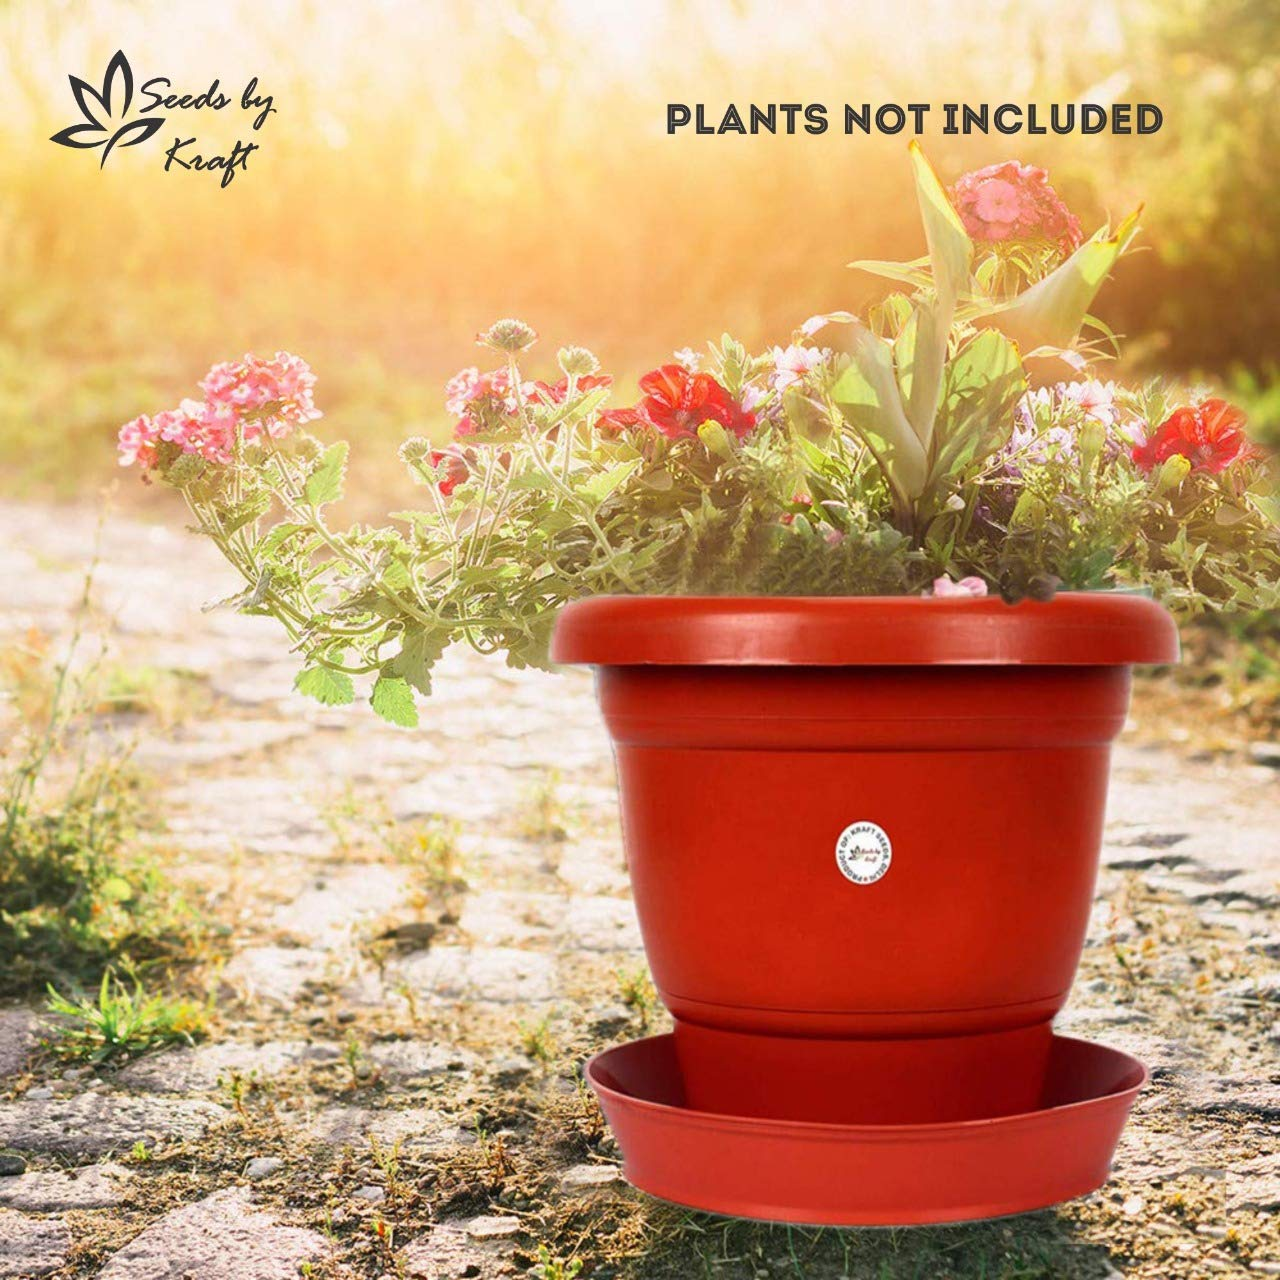 Seeds Gamla/Planter/Pot 8-inch (5 Pots) with Bottom Plate/Tray